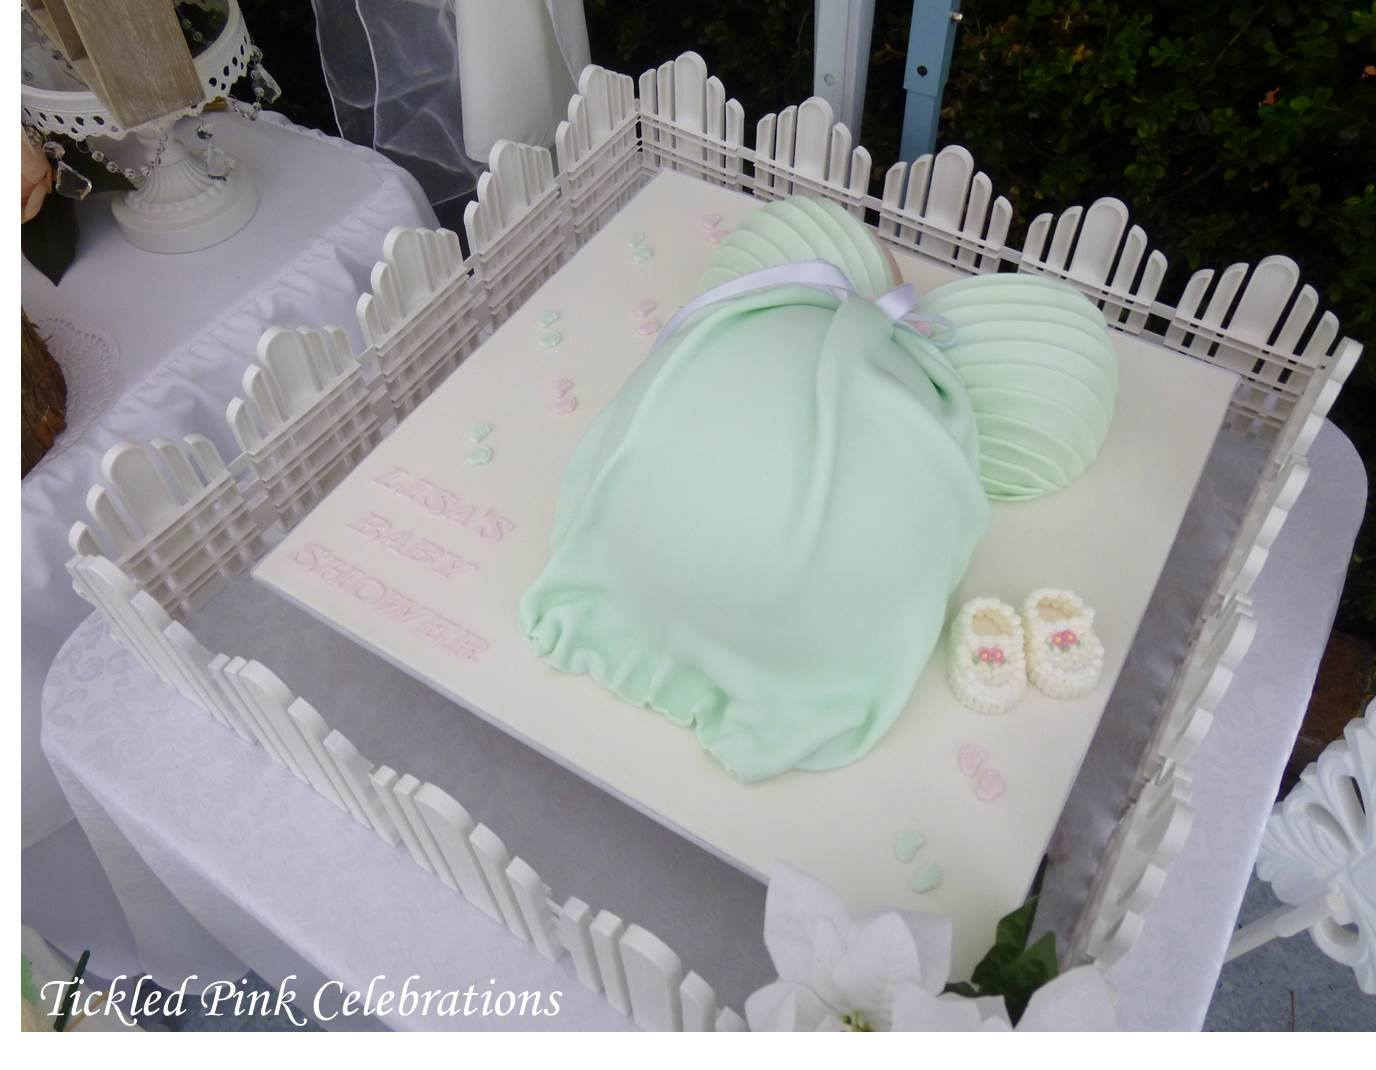 55222b4212d87 Enchanted Garden Baby Shower cake, baby shoe cake, mommy's belly cake